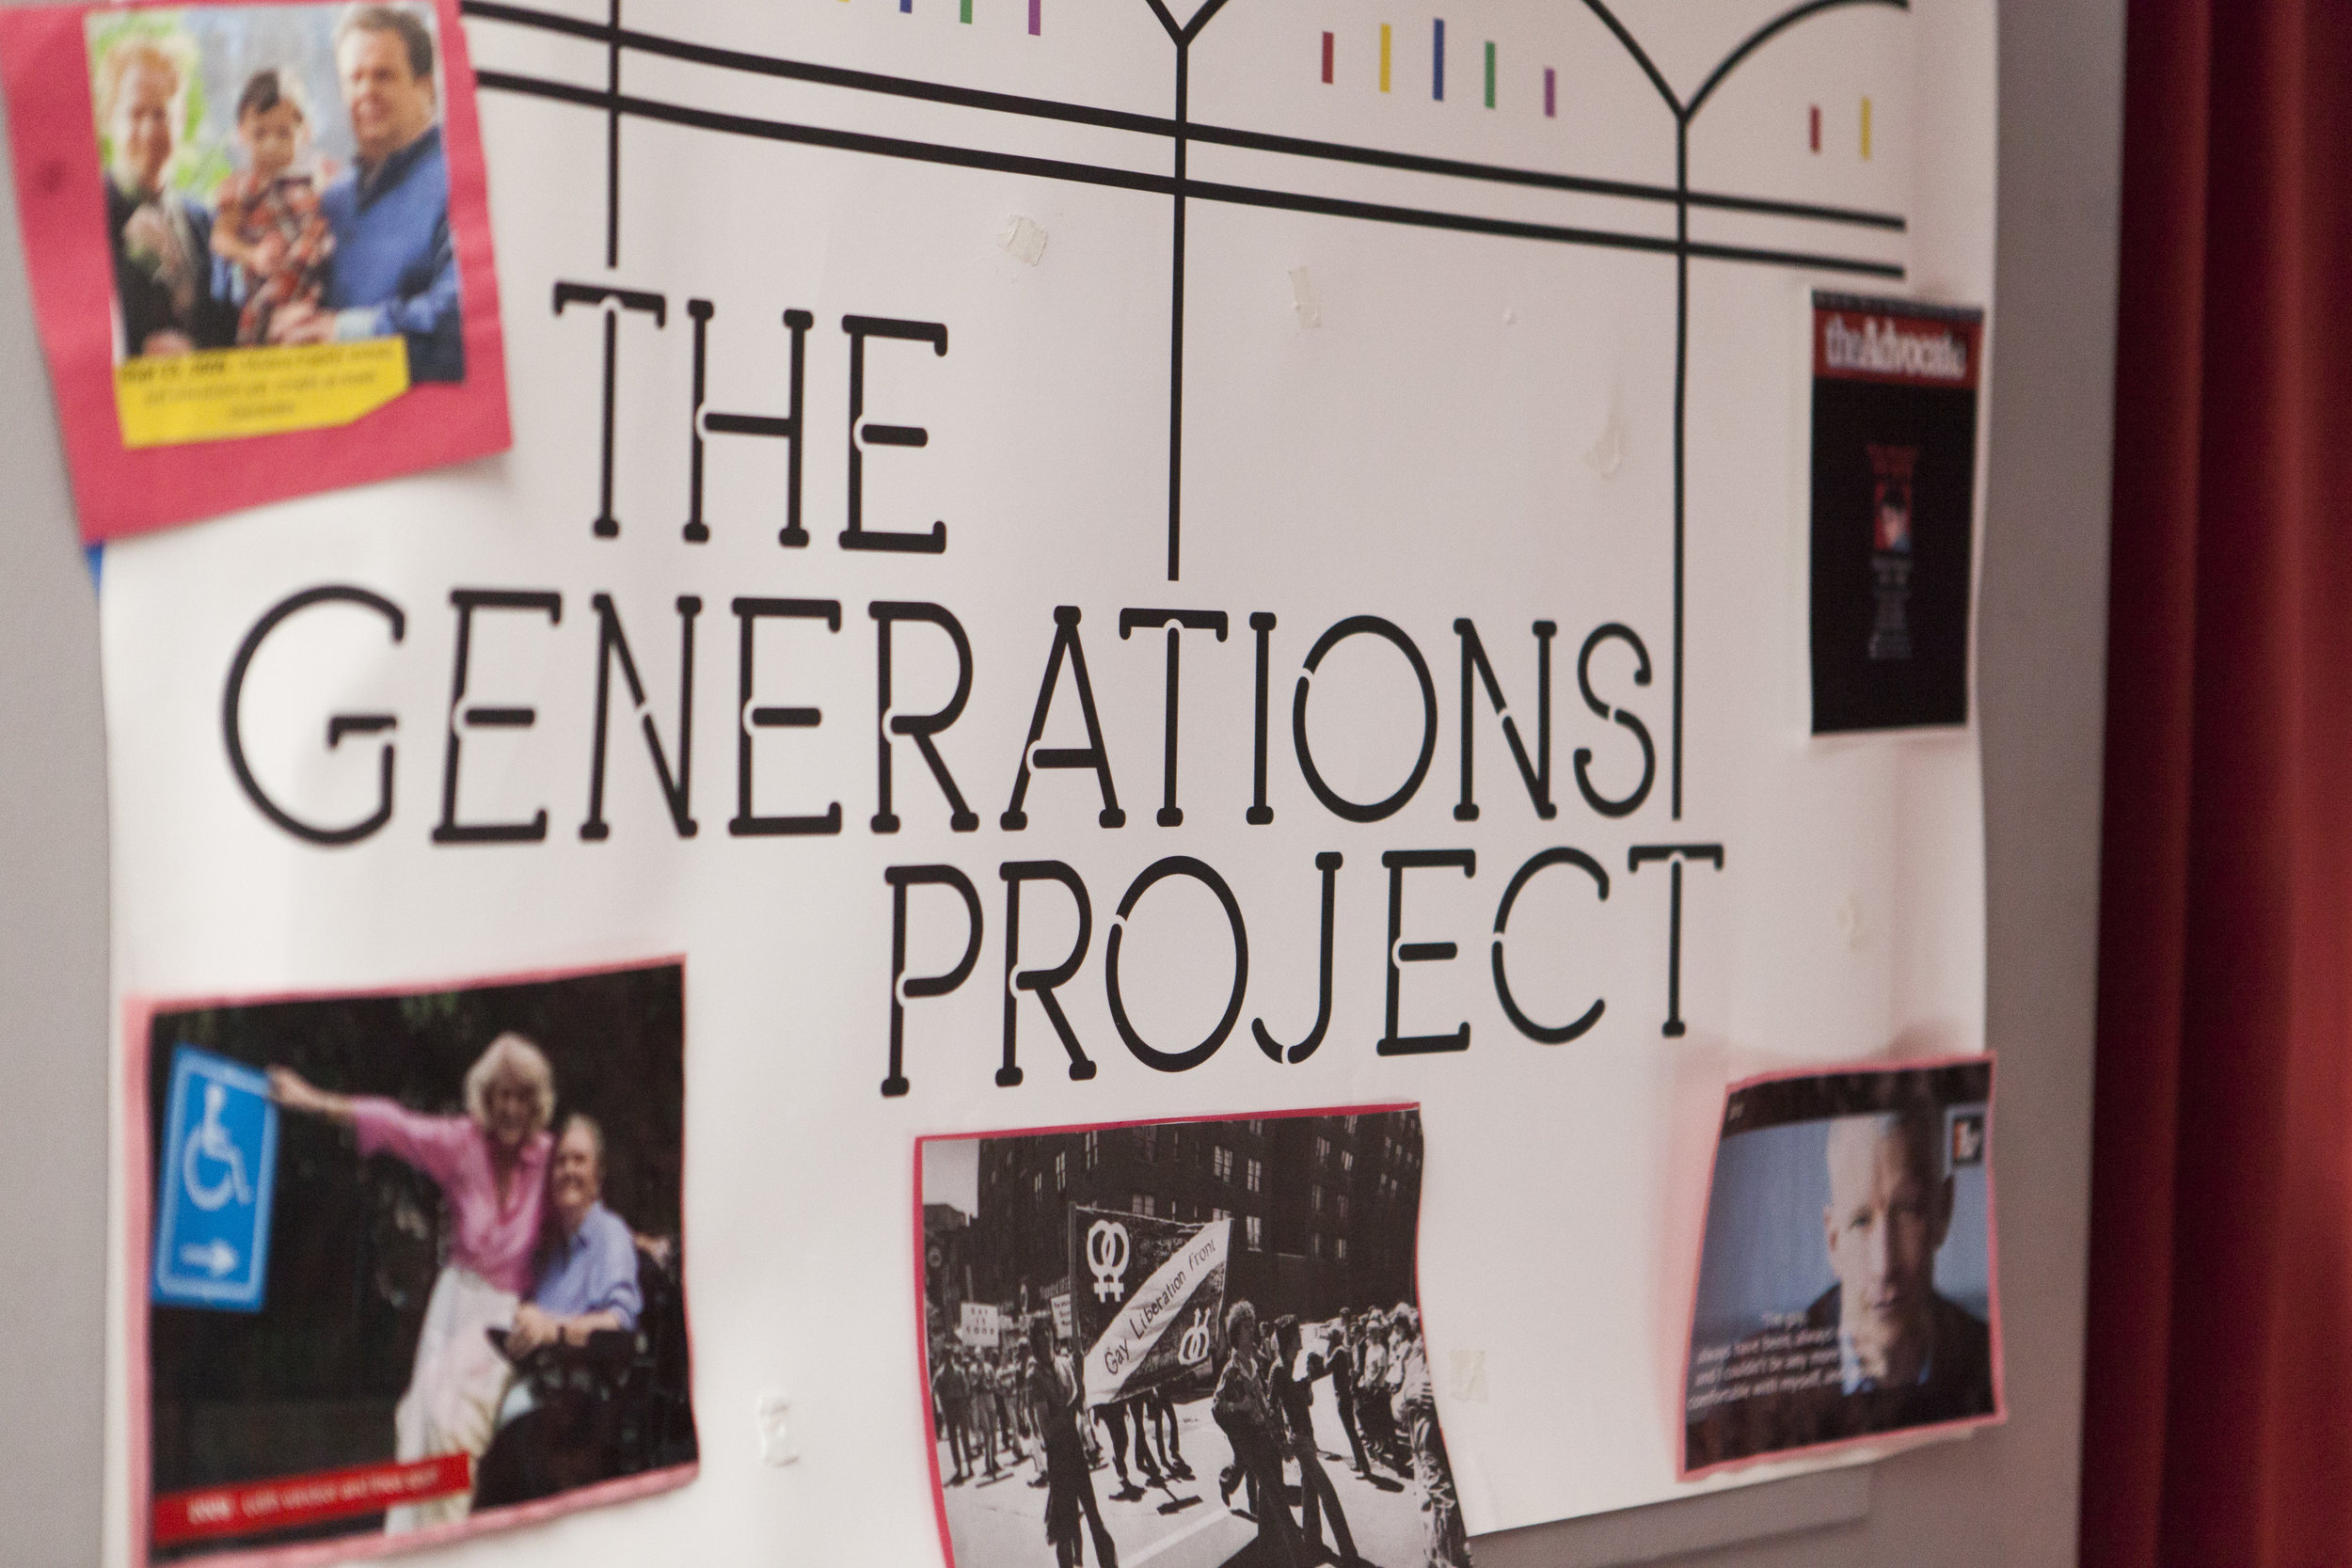 2016_09_26_The_Generations_Project_Fundraiser_Event_2016_09_26_The_Generations_Project_Fundraiser_Event_Ecetera_Etcentera2016_09_26_The_Generations_Project_Fundraiser_Event_Ecetera_Etcentera070.JPG